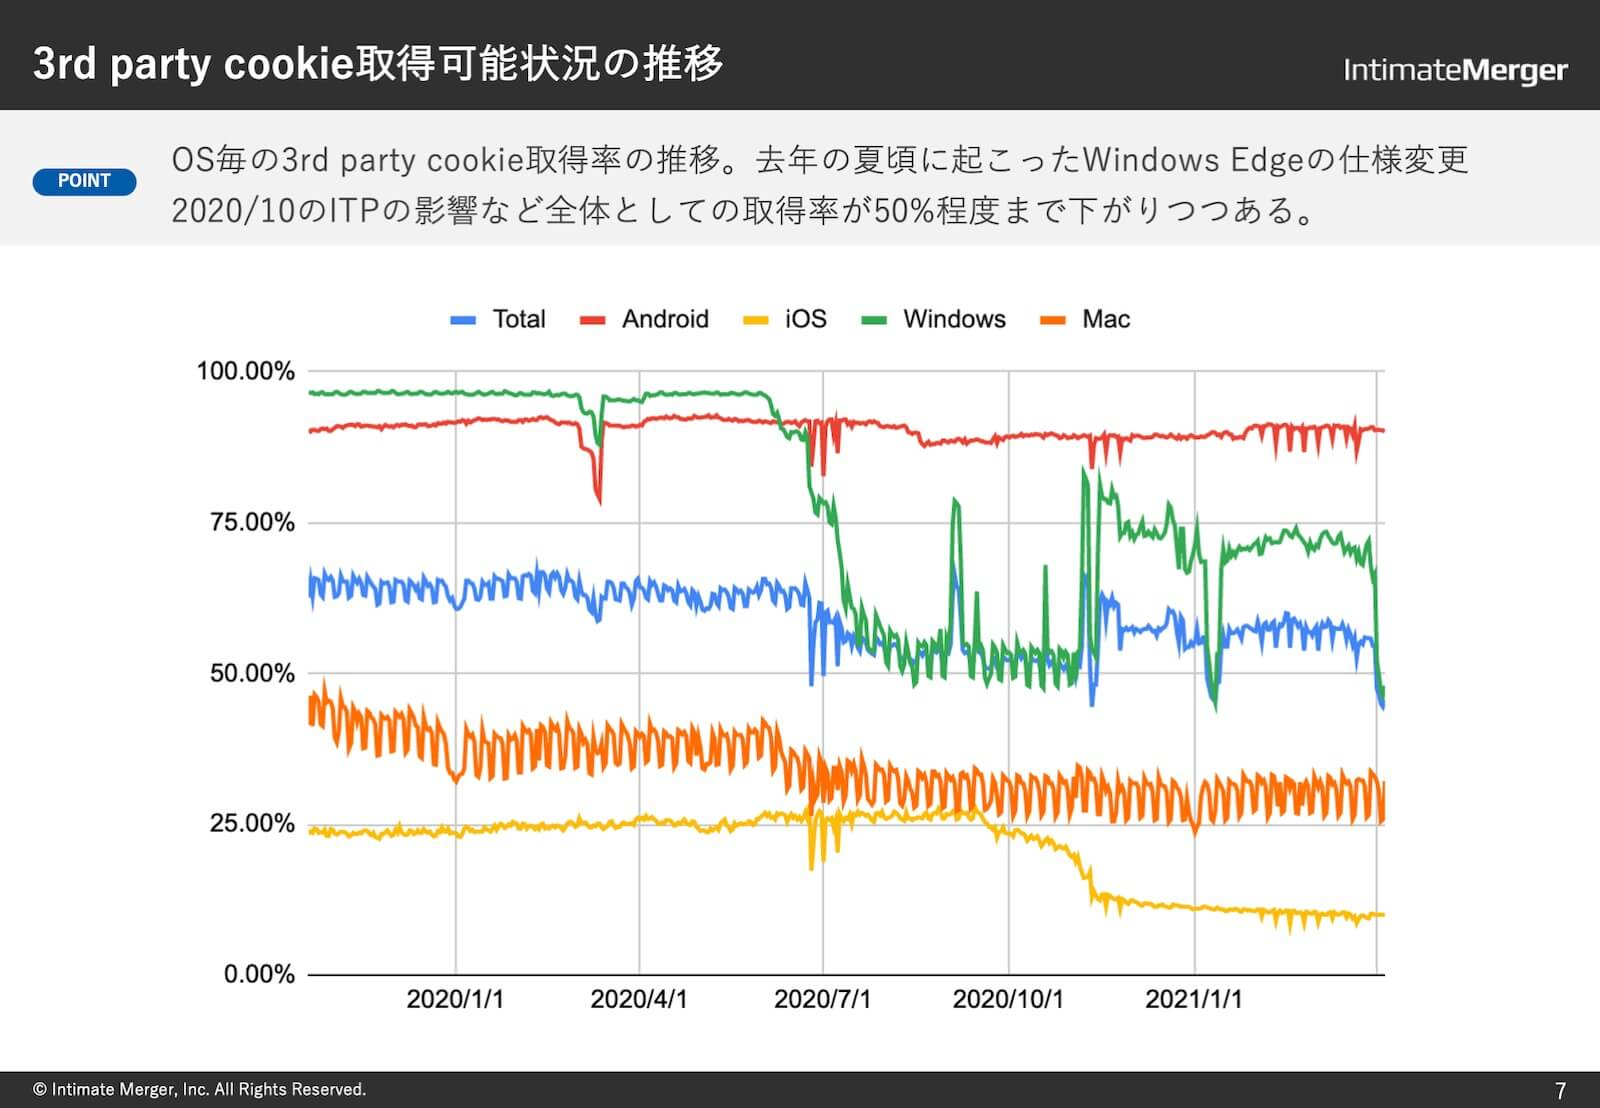 3rd party cookie取得状況の推移